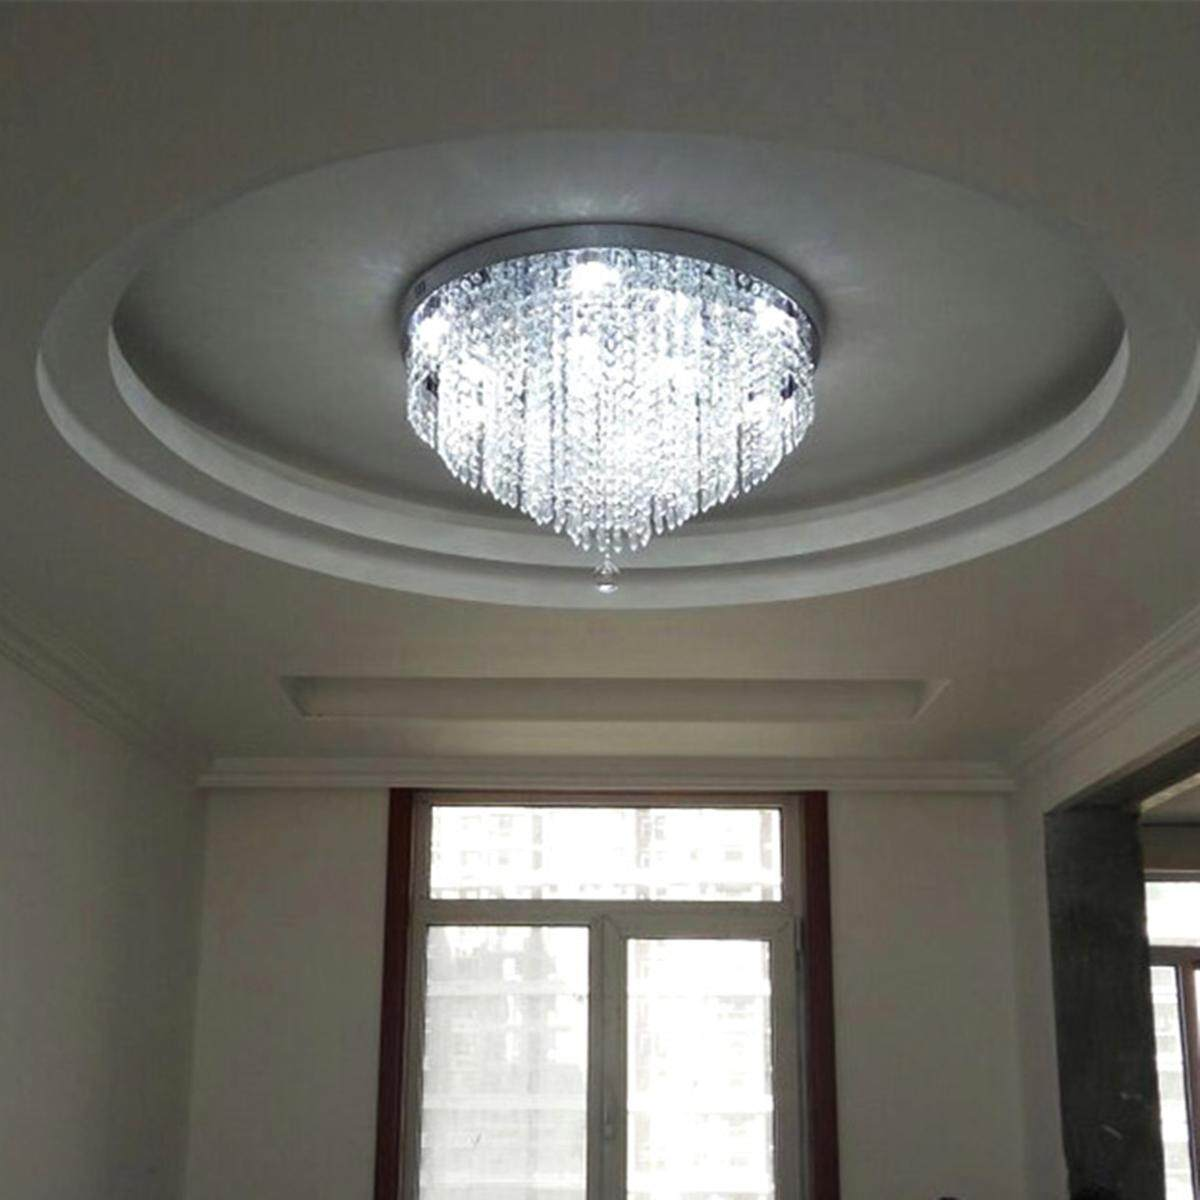 Elegant Chandelier Crystal Lamp Light Ceiling Pendant Mount Fixture Home Decor#White Light